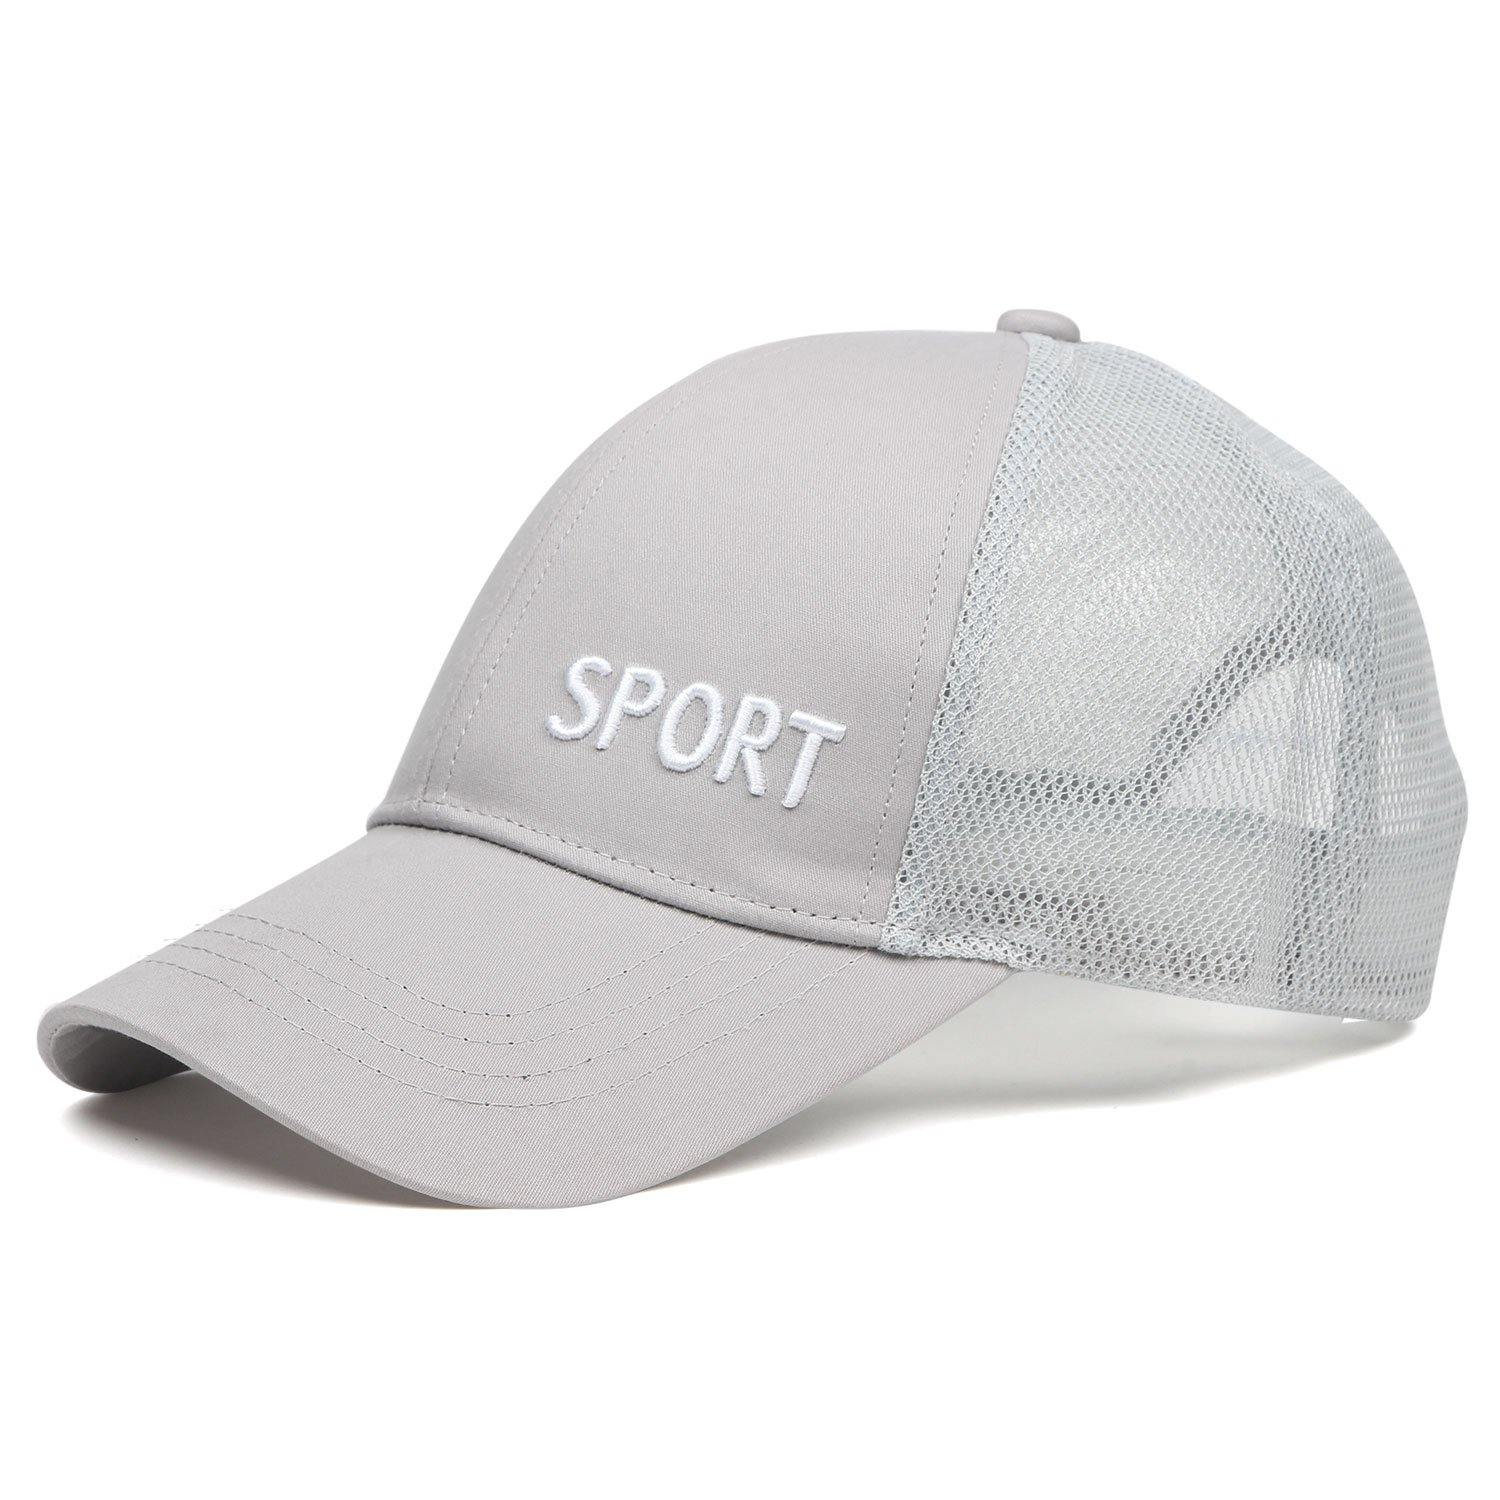 Plain Cotton Adjustable Summer Sports Cap for Men - Light Grey